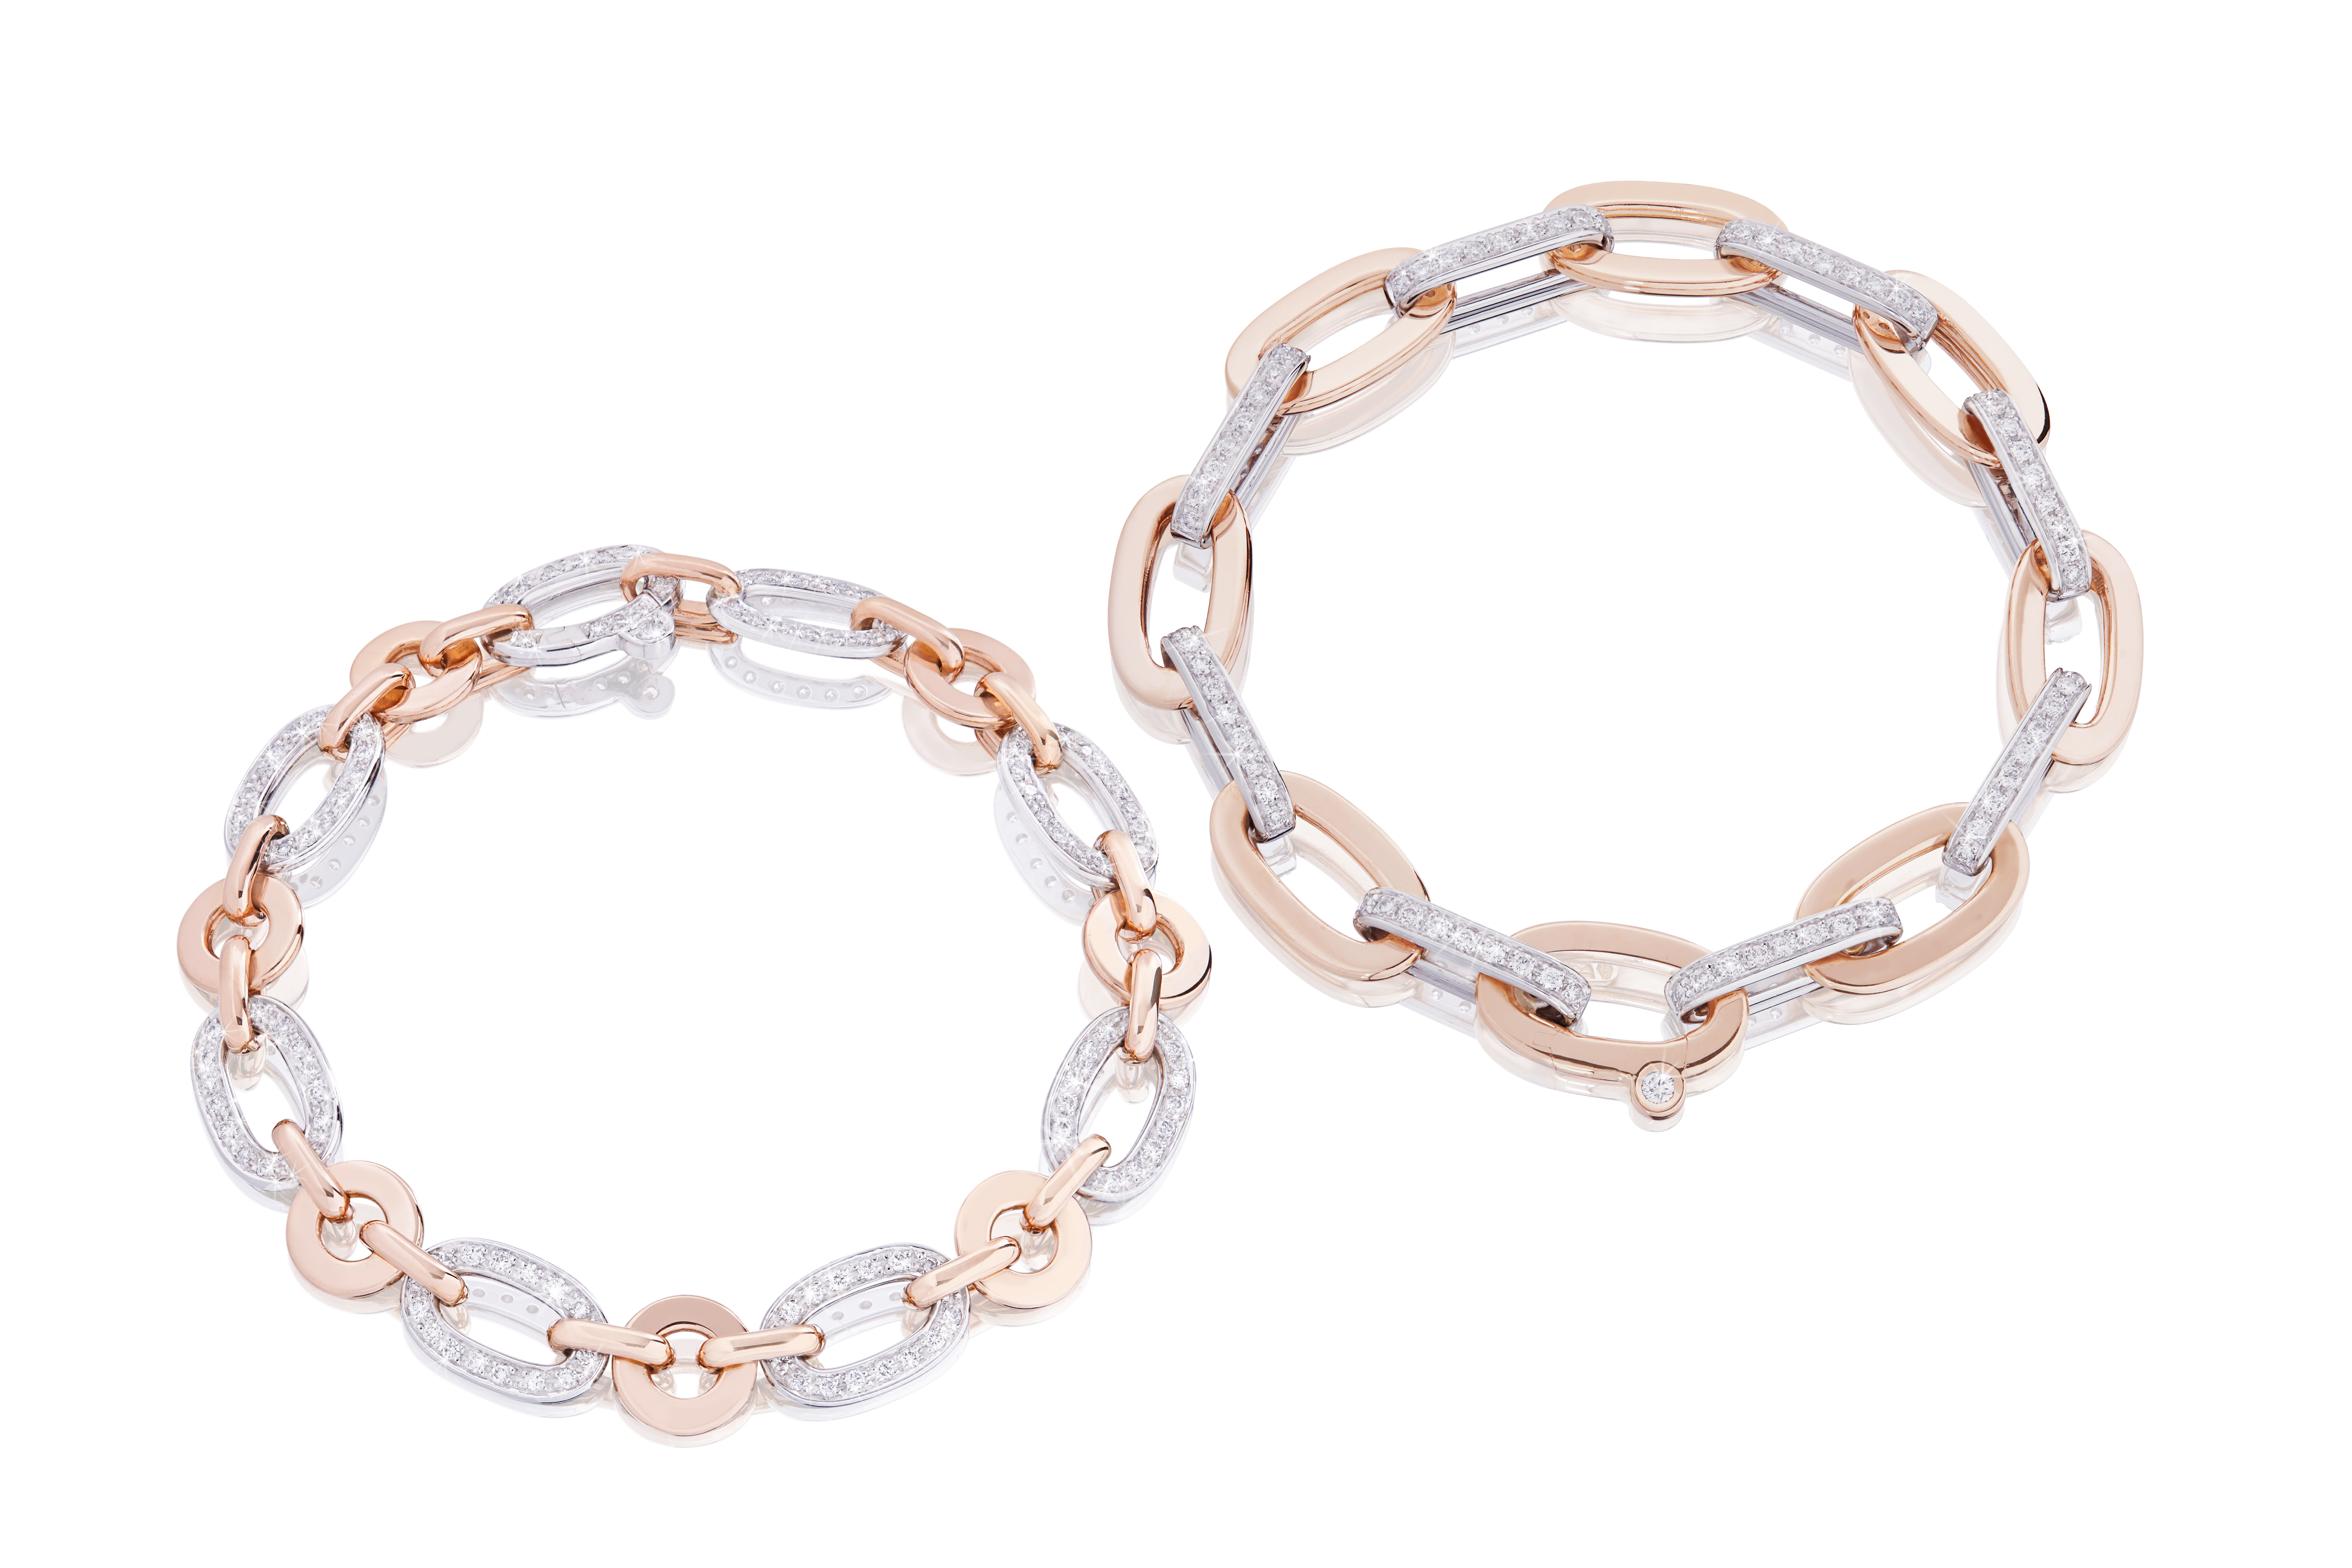 Messerer_Bracelet_RG_Diamanten_SET.jpg